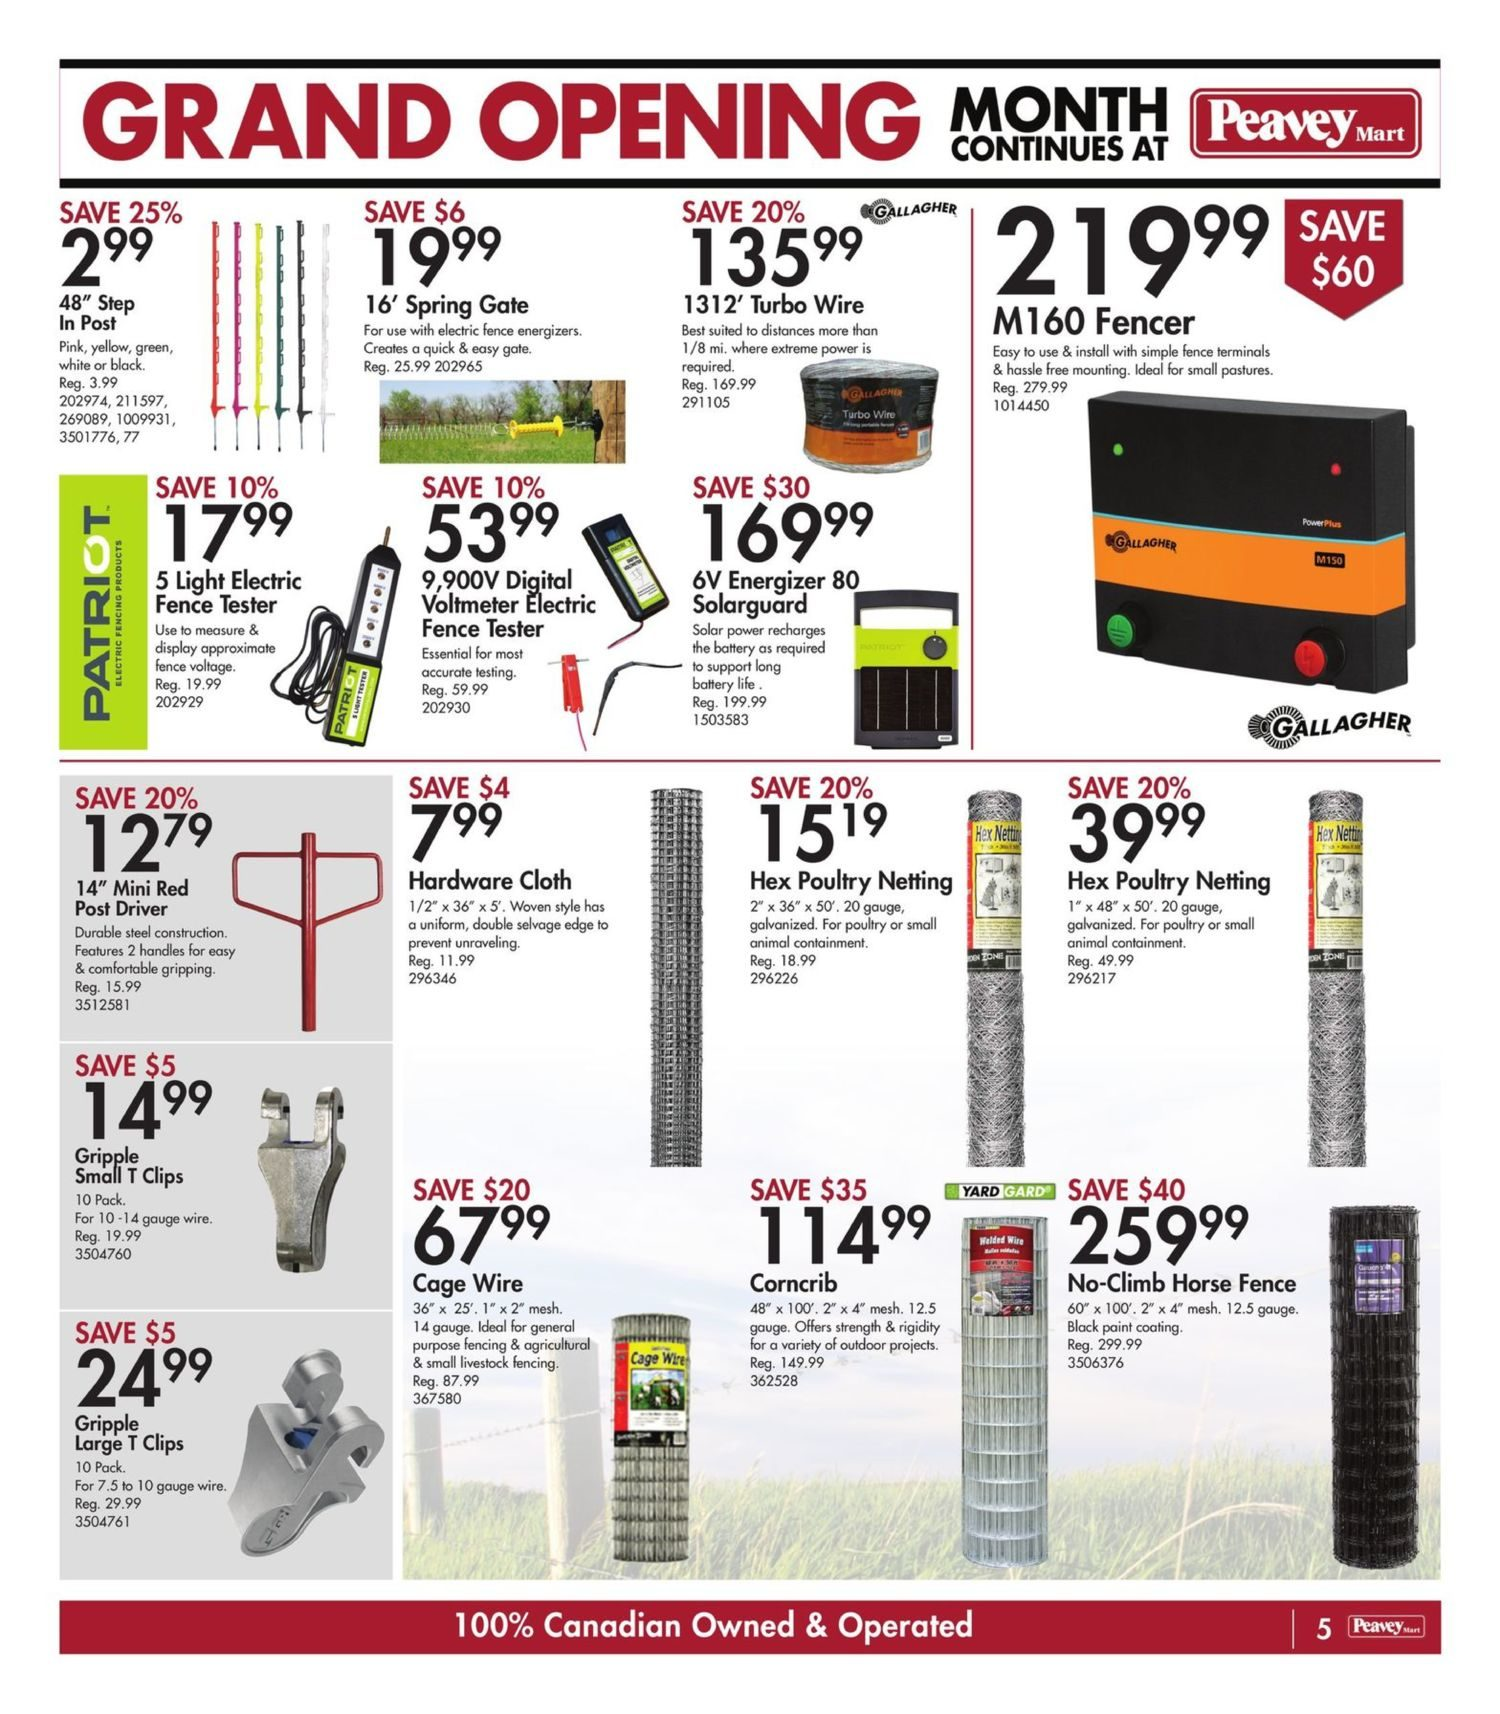 Peavey Mart - Weekly Flyer Specials - National Grand Opening Celebration - Page 8